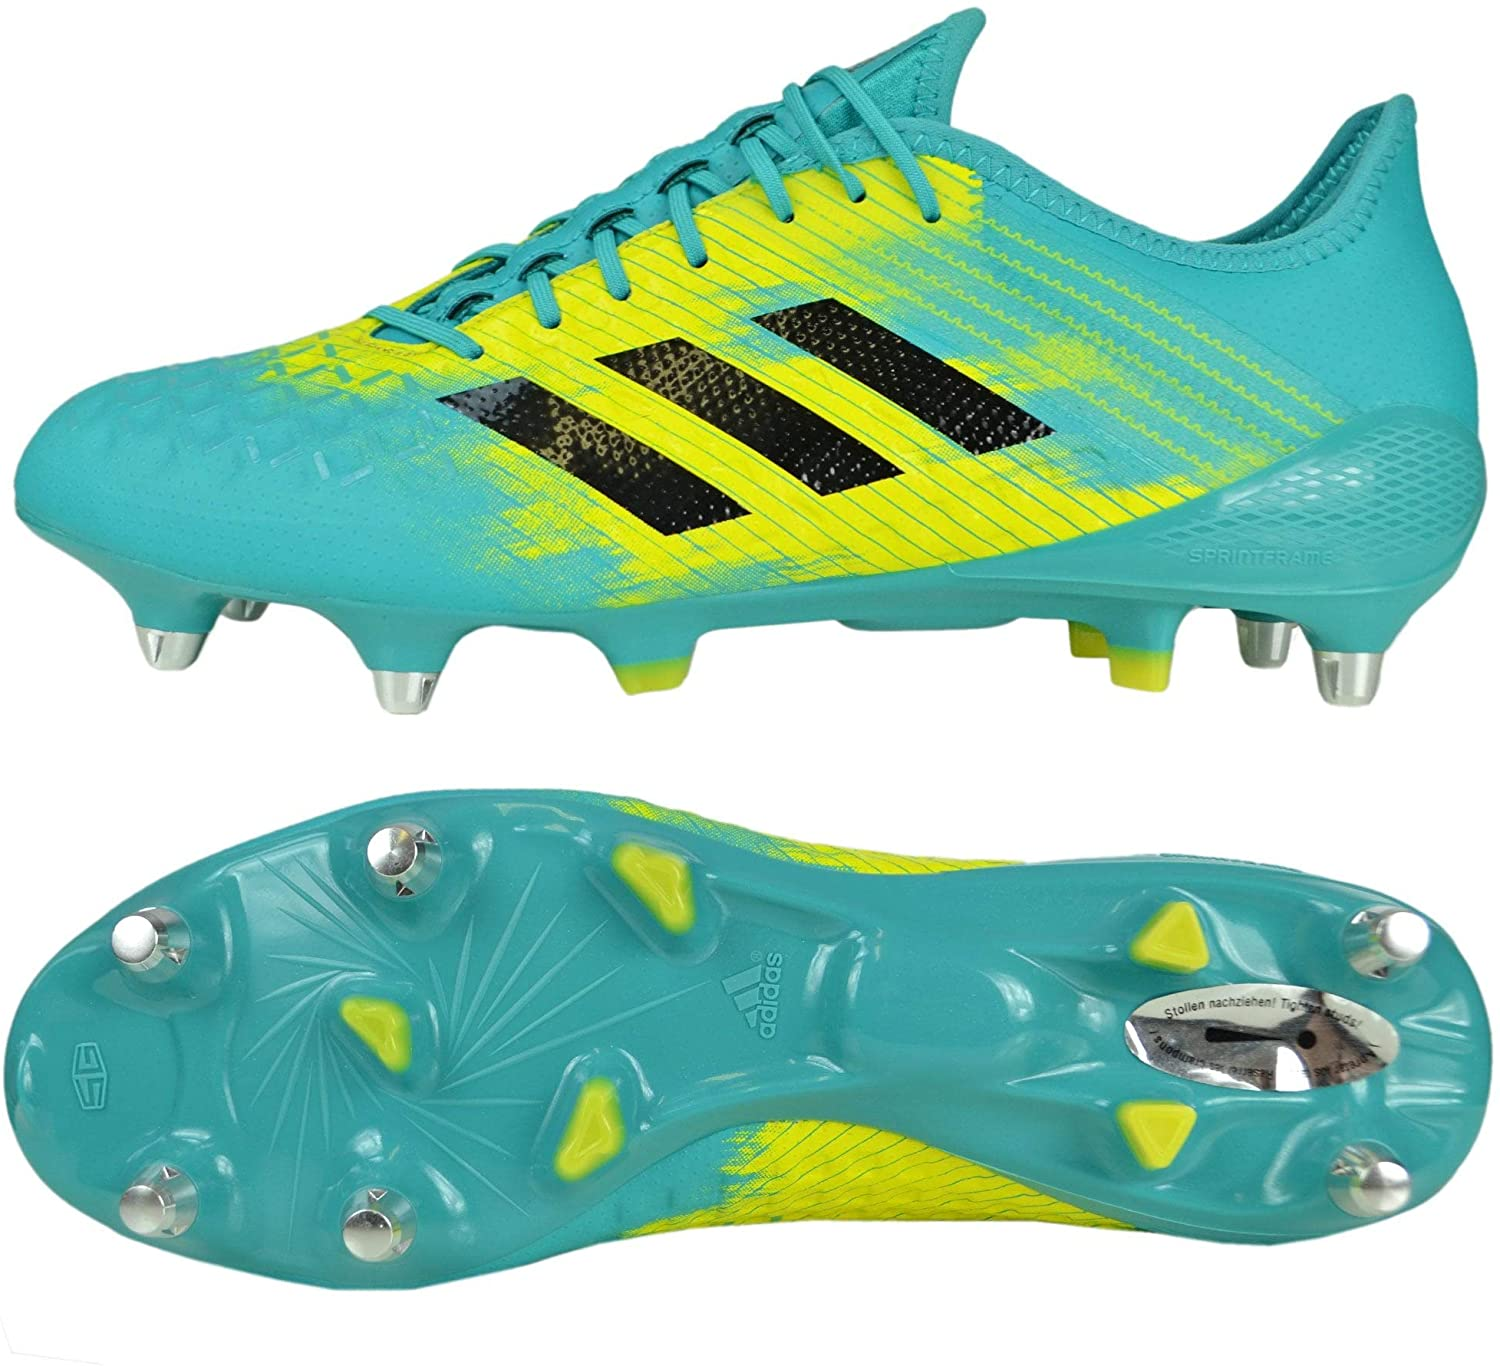 cuadrado Pino Fraternidad  adidas Malice Control (Sg) Rugby Shoes: Amazon.co.uk: Shoes & Bags